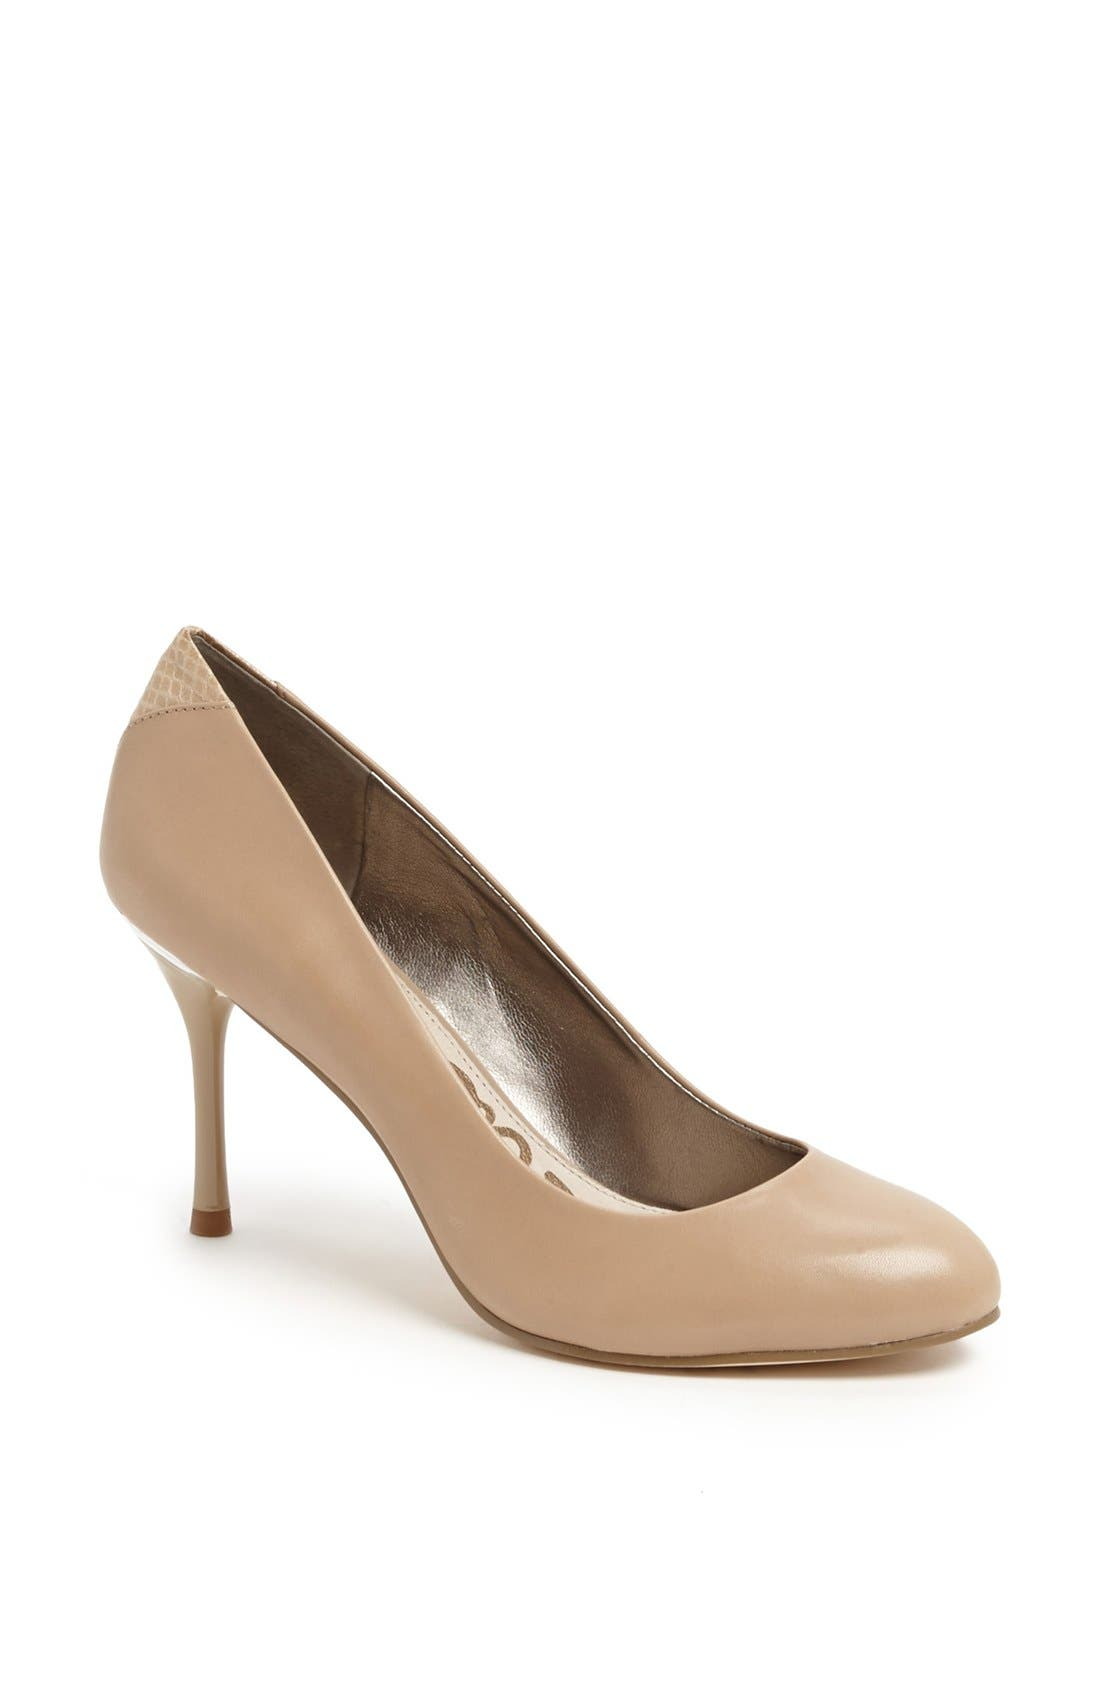 Alternate Image 1 Selected - Sam Edelman 'Camdyn' Pump